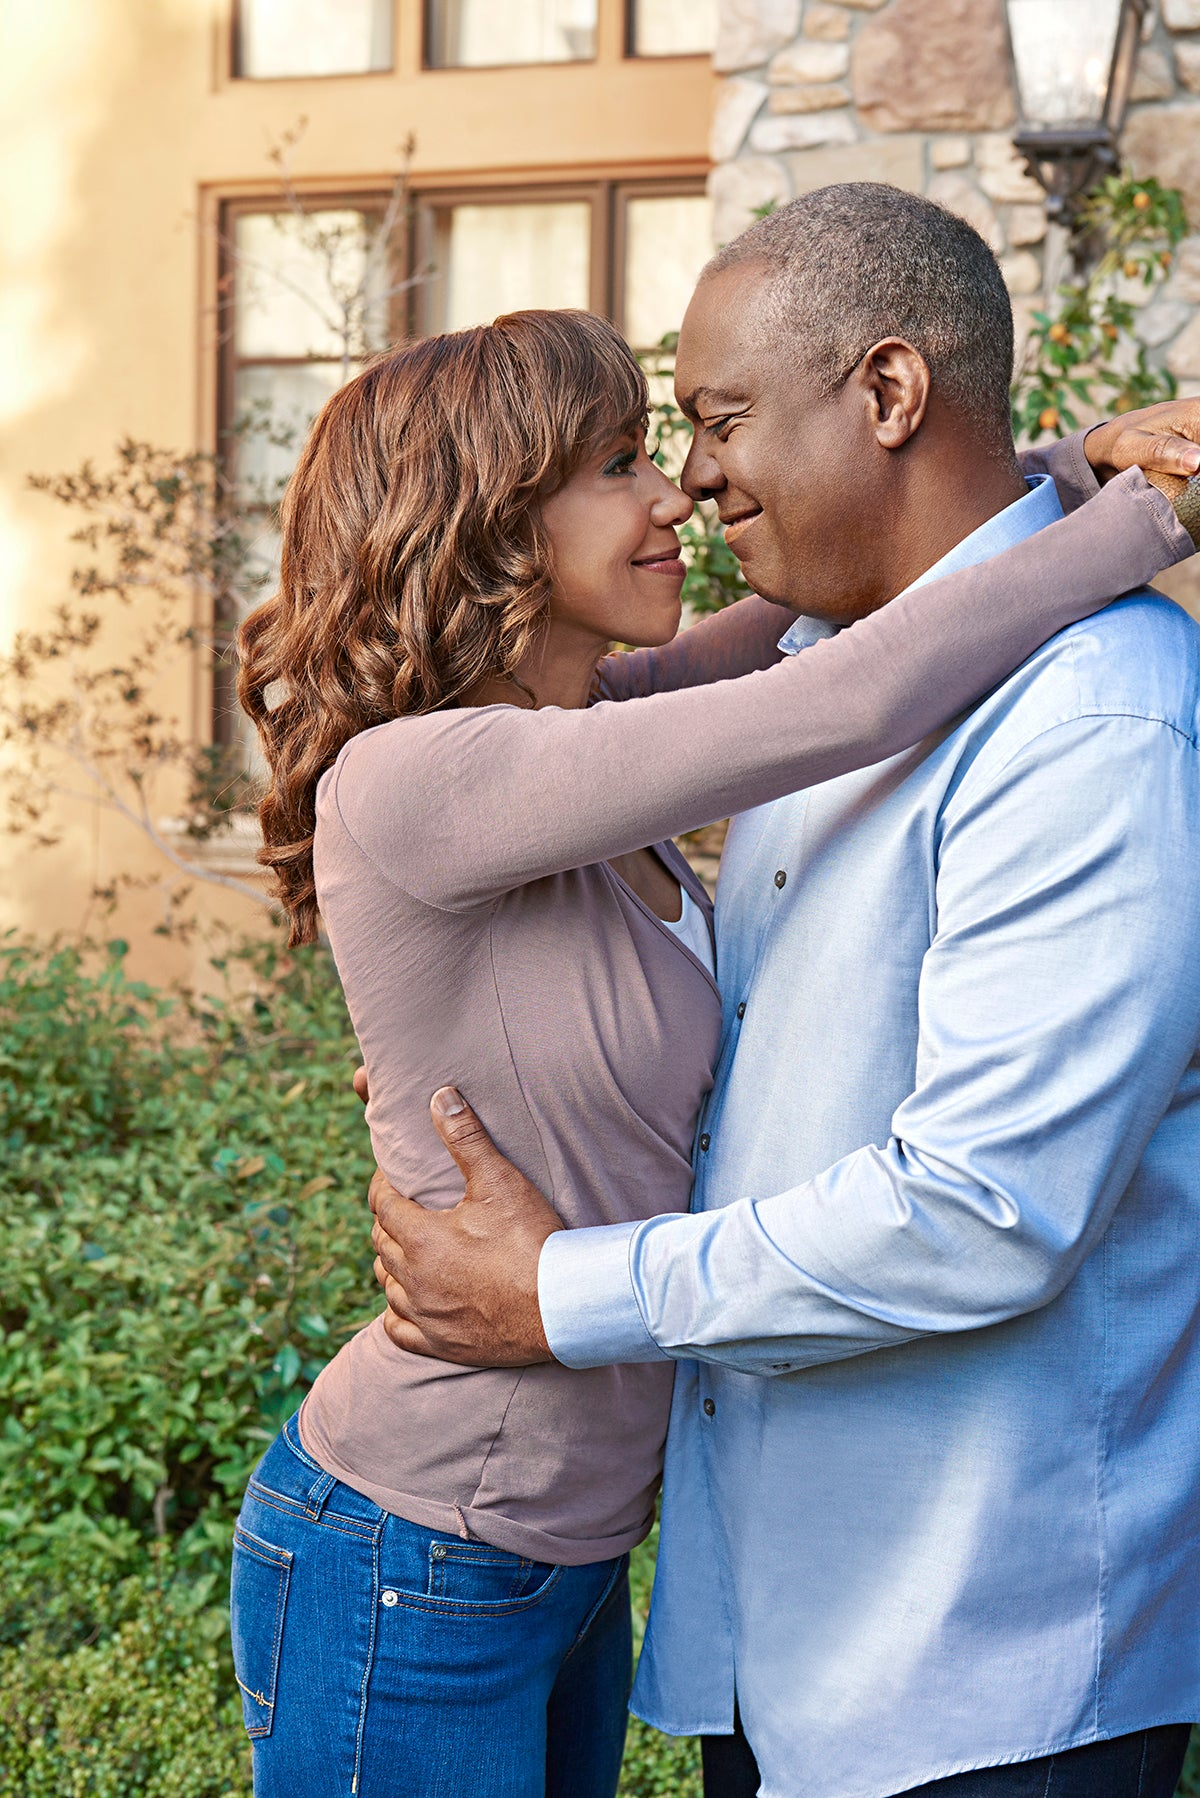 Solid As a Rock! Holly Robinson Peete and Rodney Peete Celebrate 21 Years Of Marriage